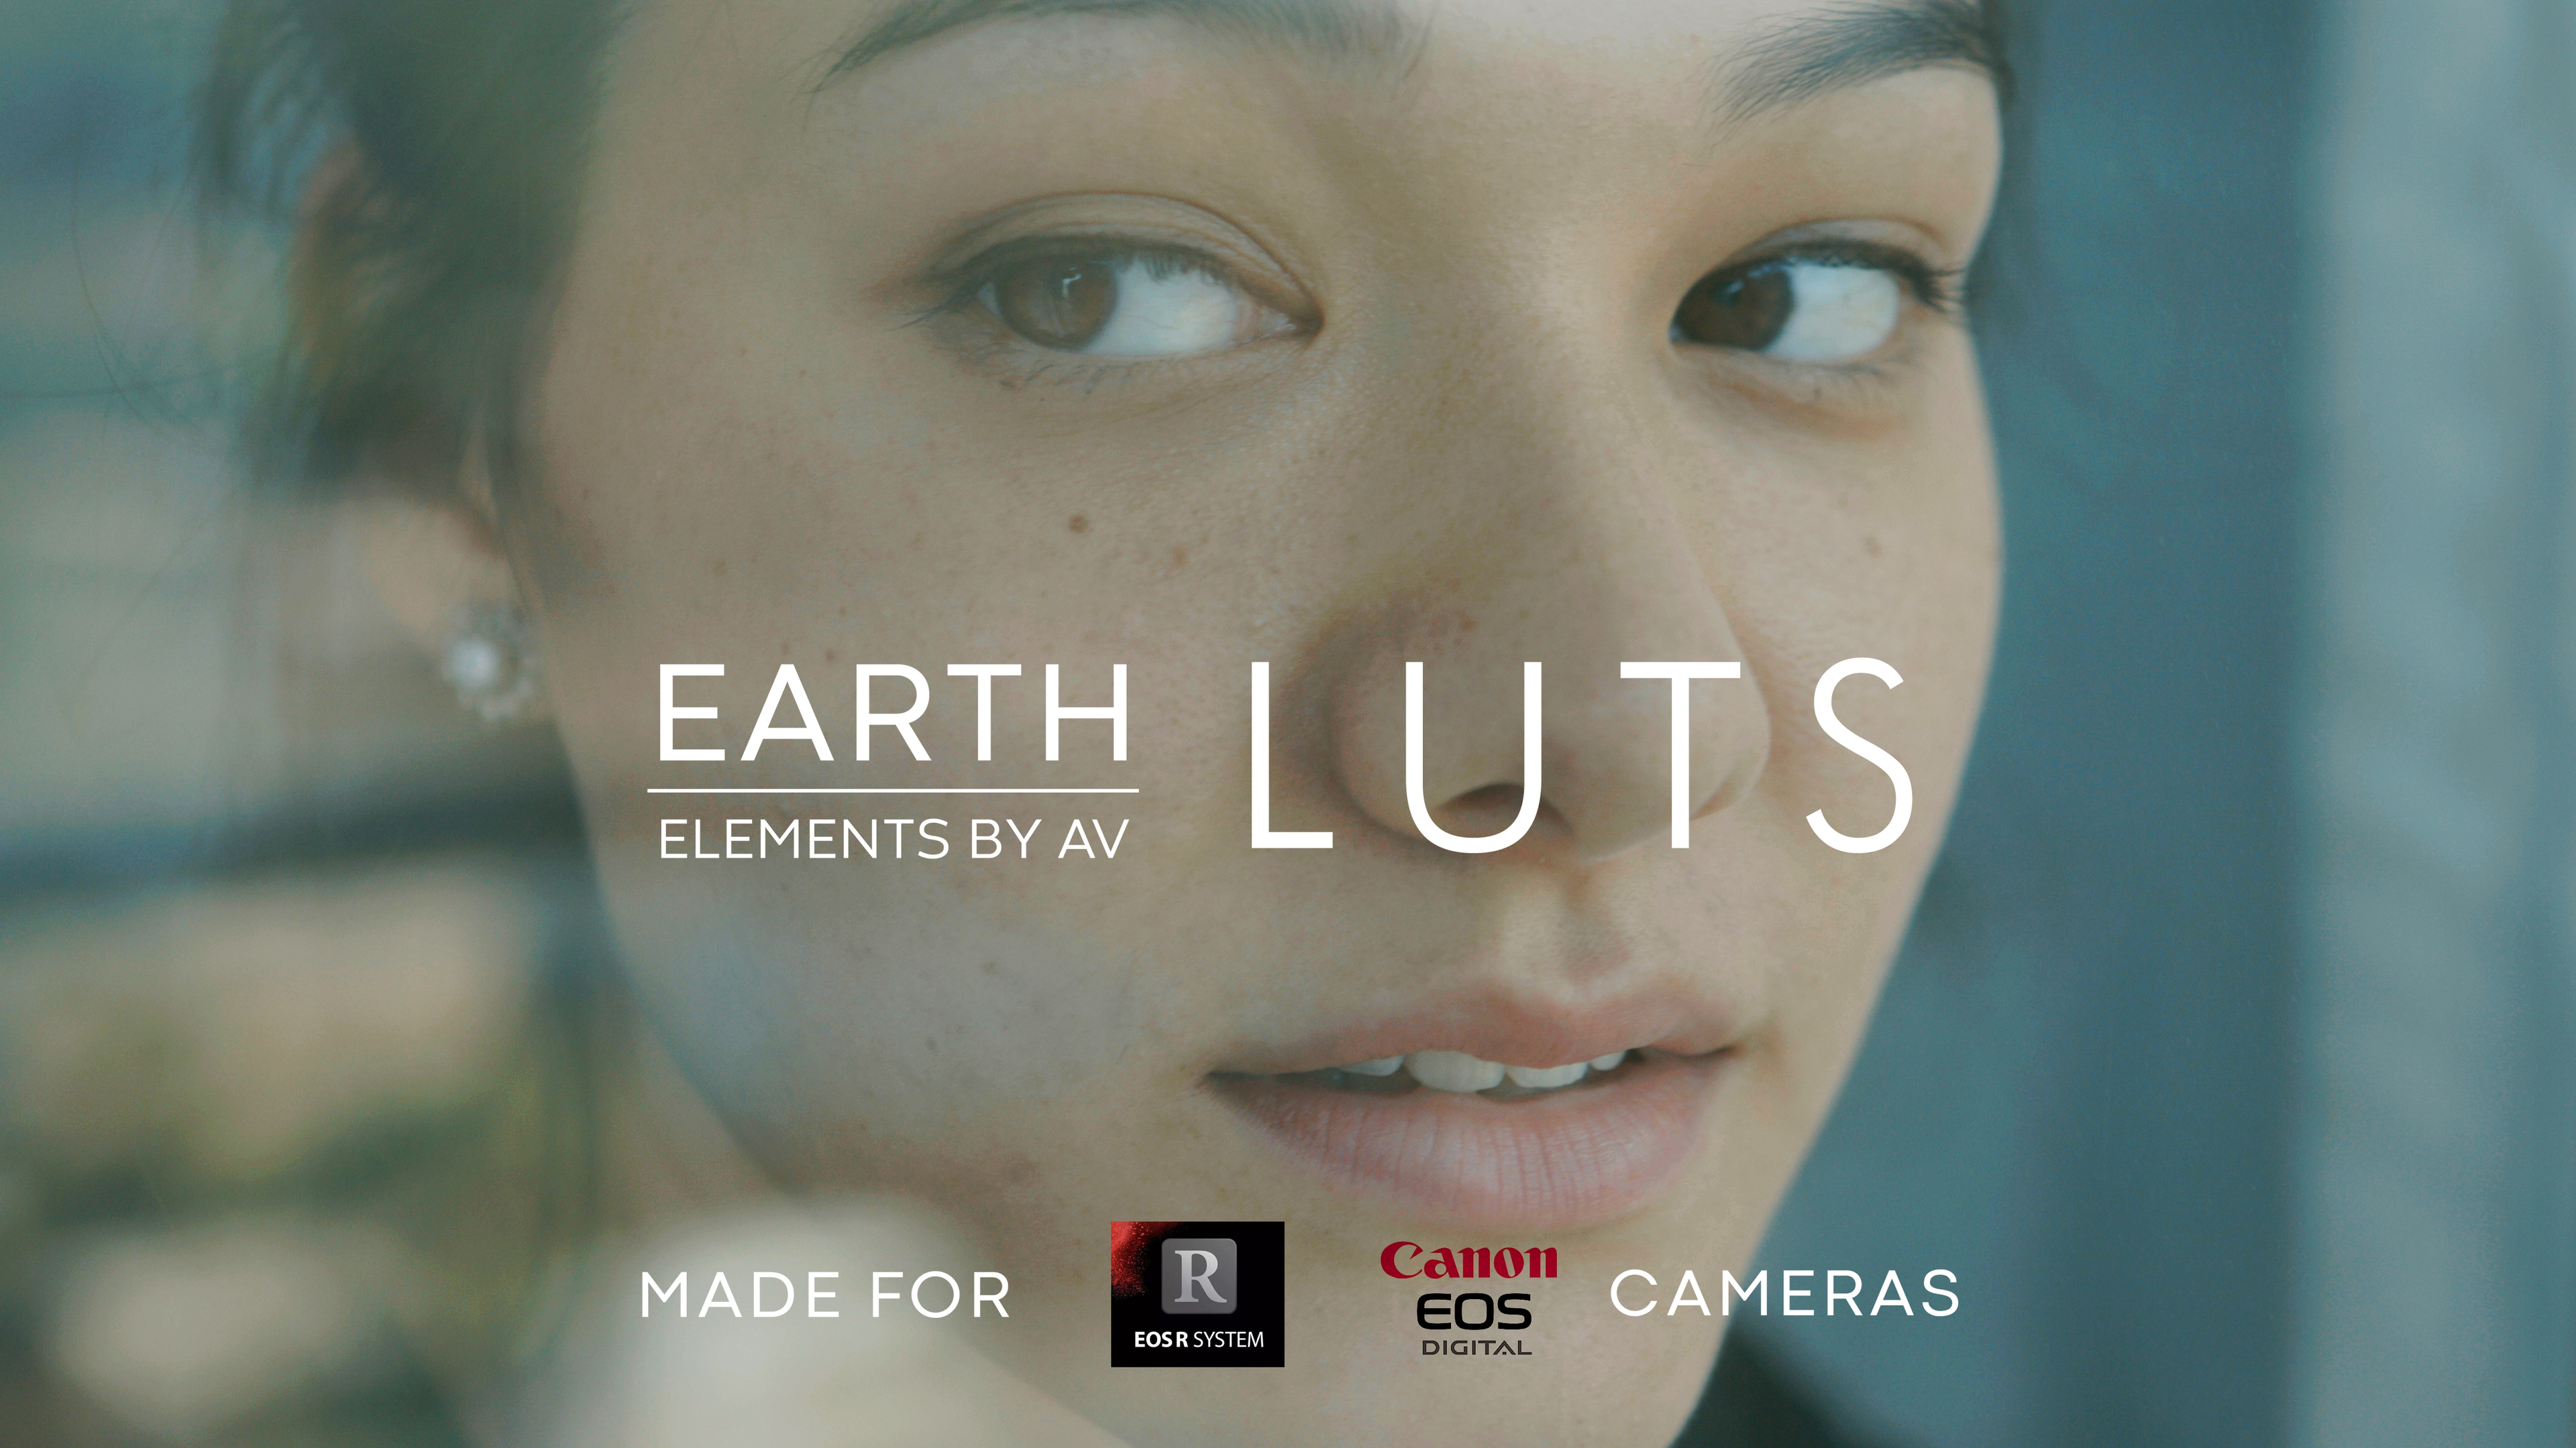 Earth Lut Pack For Canon R System Dslr With Clog On Elements By Av